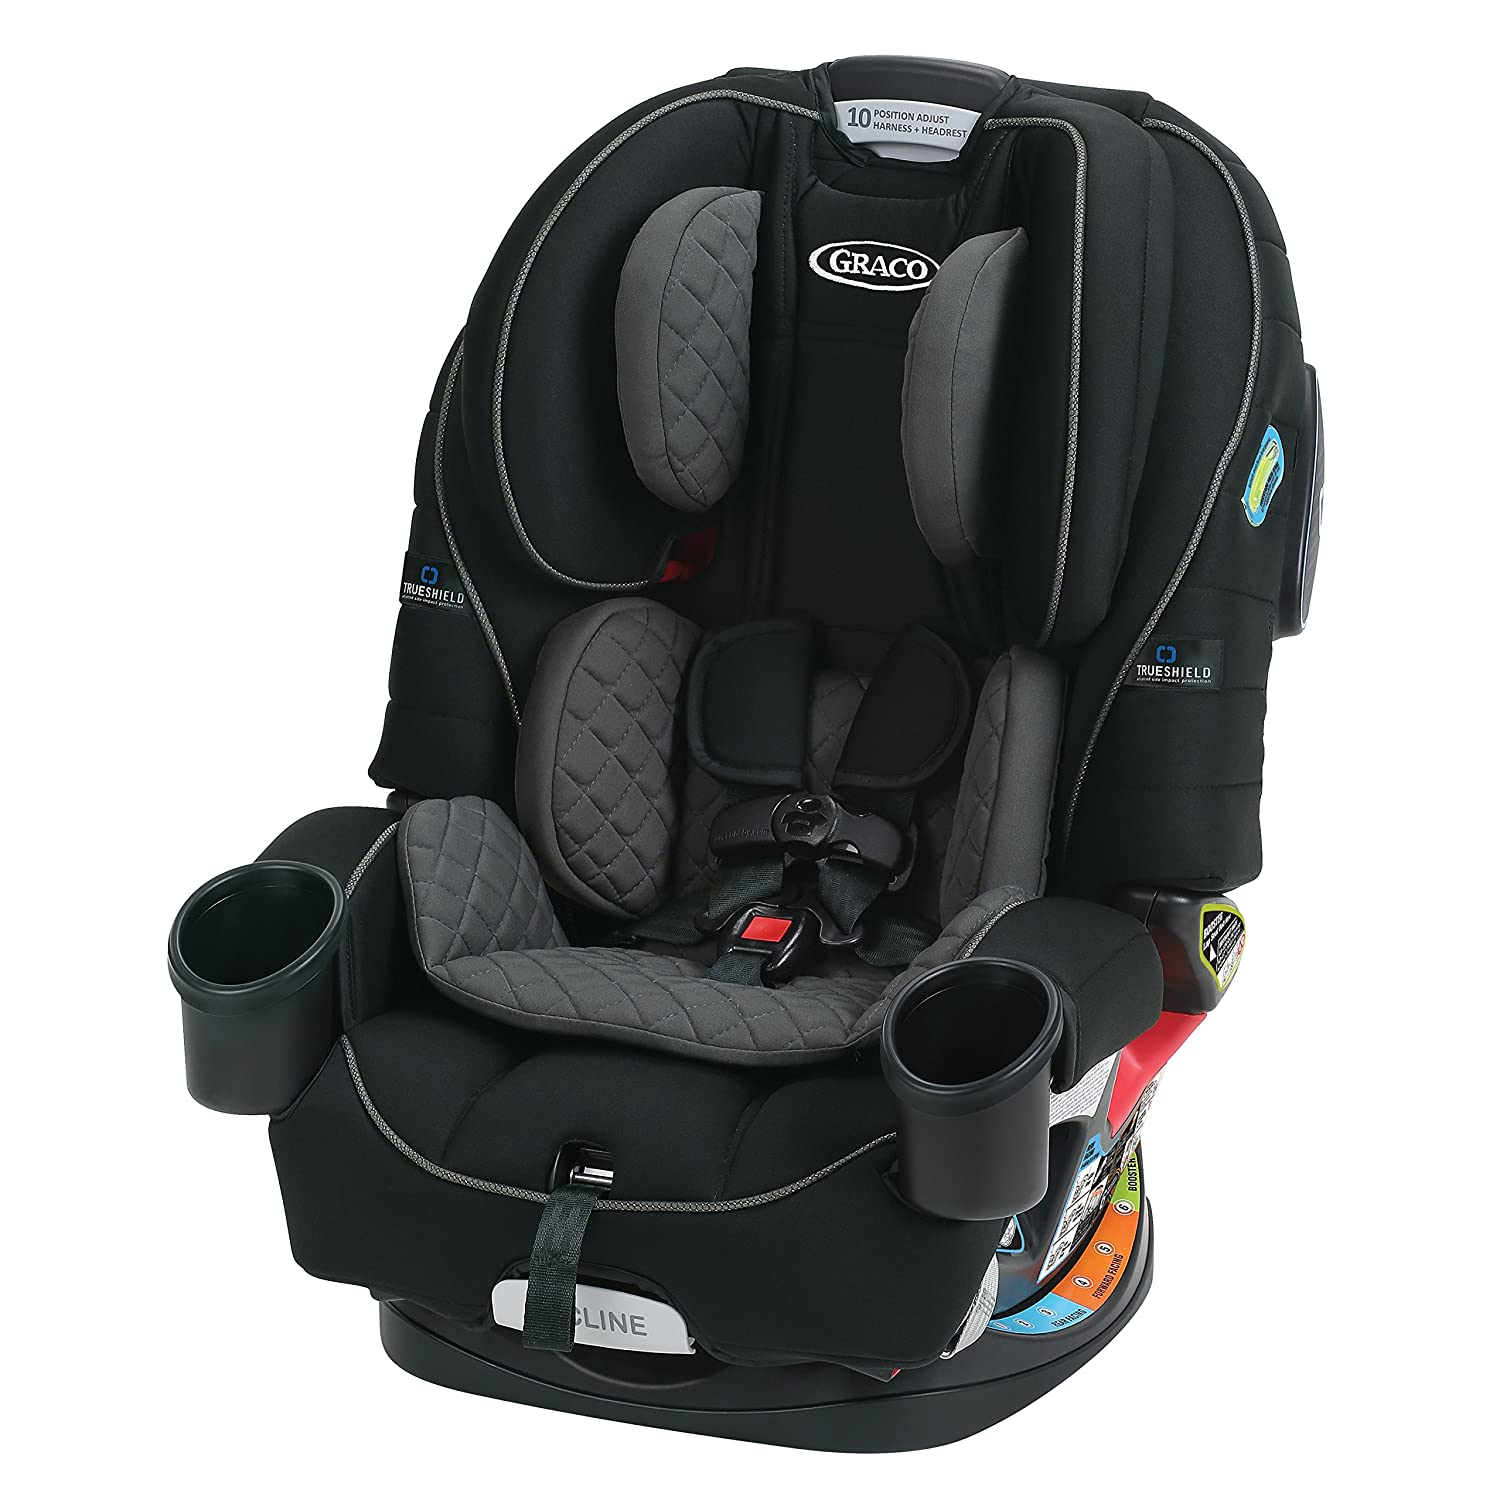 Graco 4Ever All-in-1 Convertible Car Seat, Cameron Graco Baby 1906081